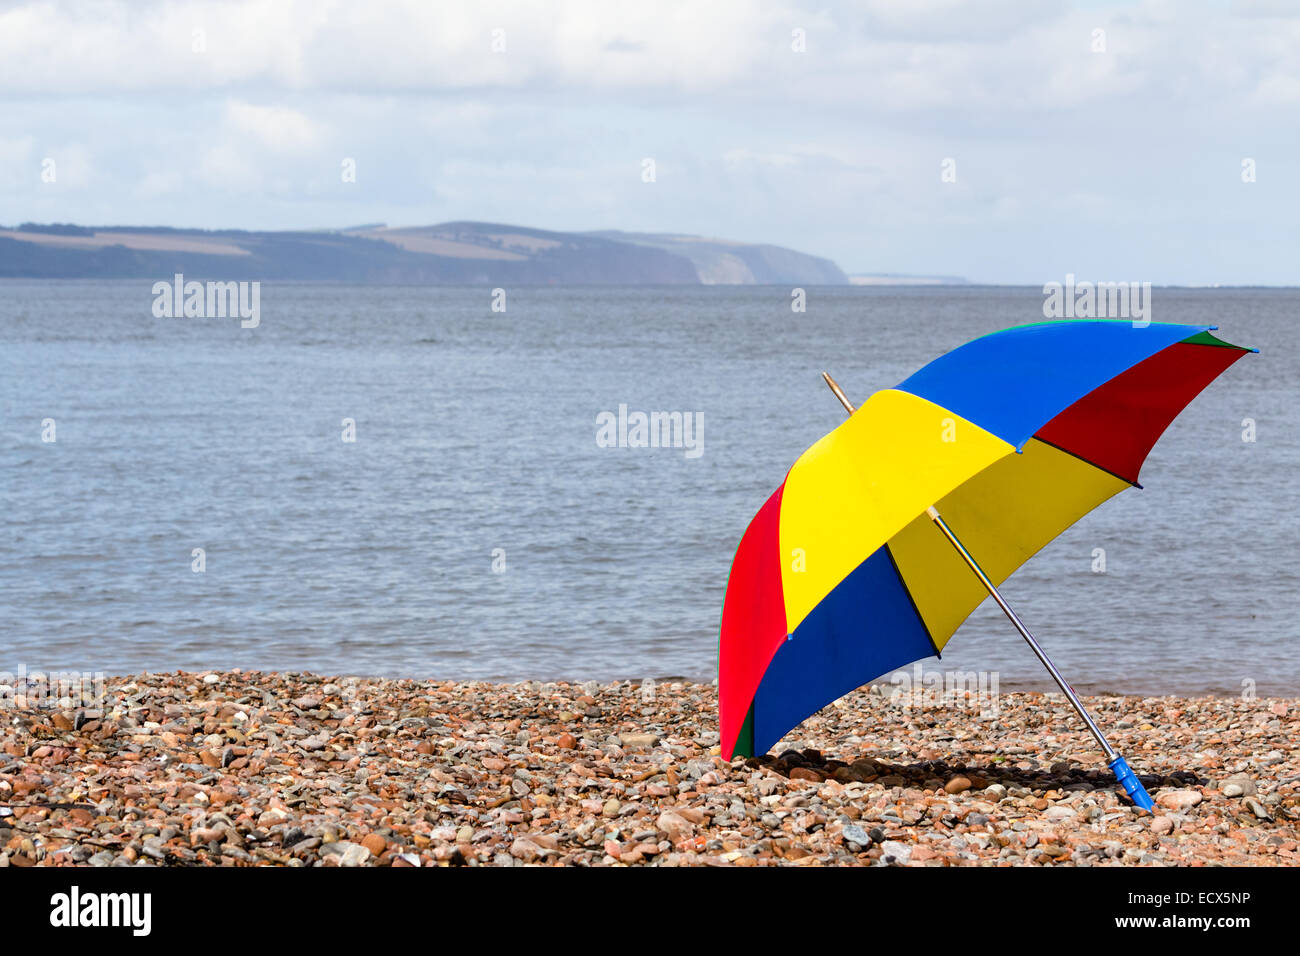 A colorful open rain umbrella at the beach of Channonry Point, Scotland - known for dolphin watching - Stock Image